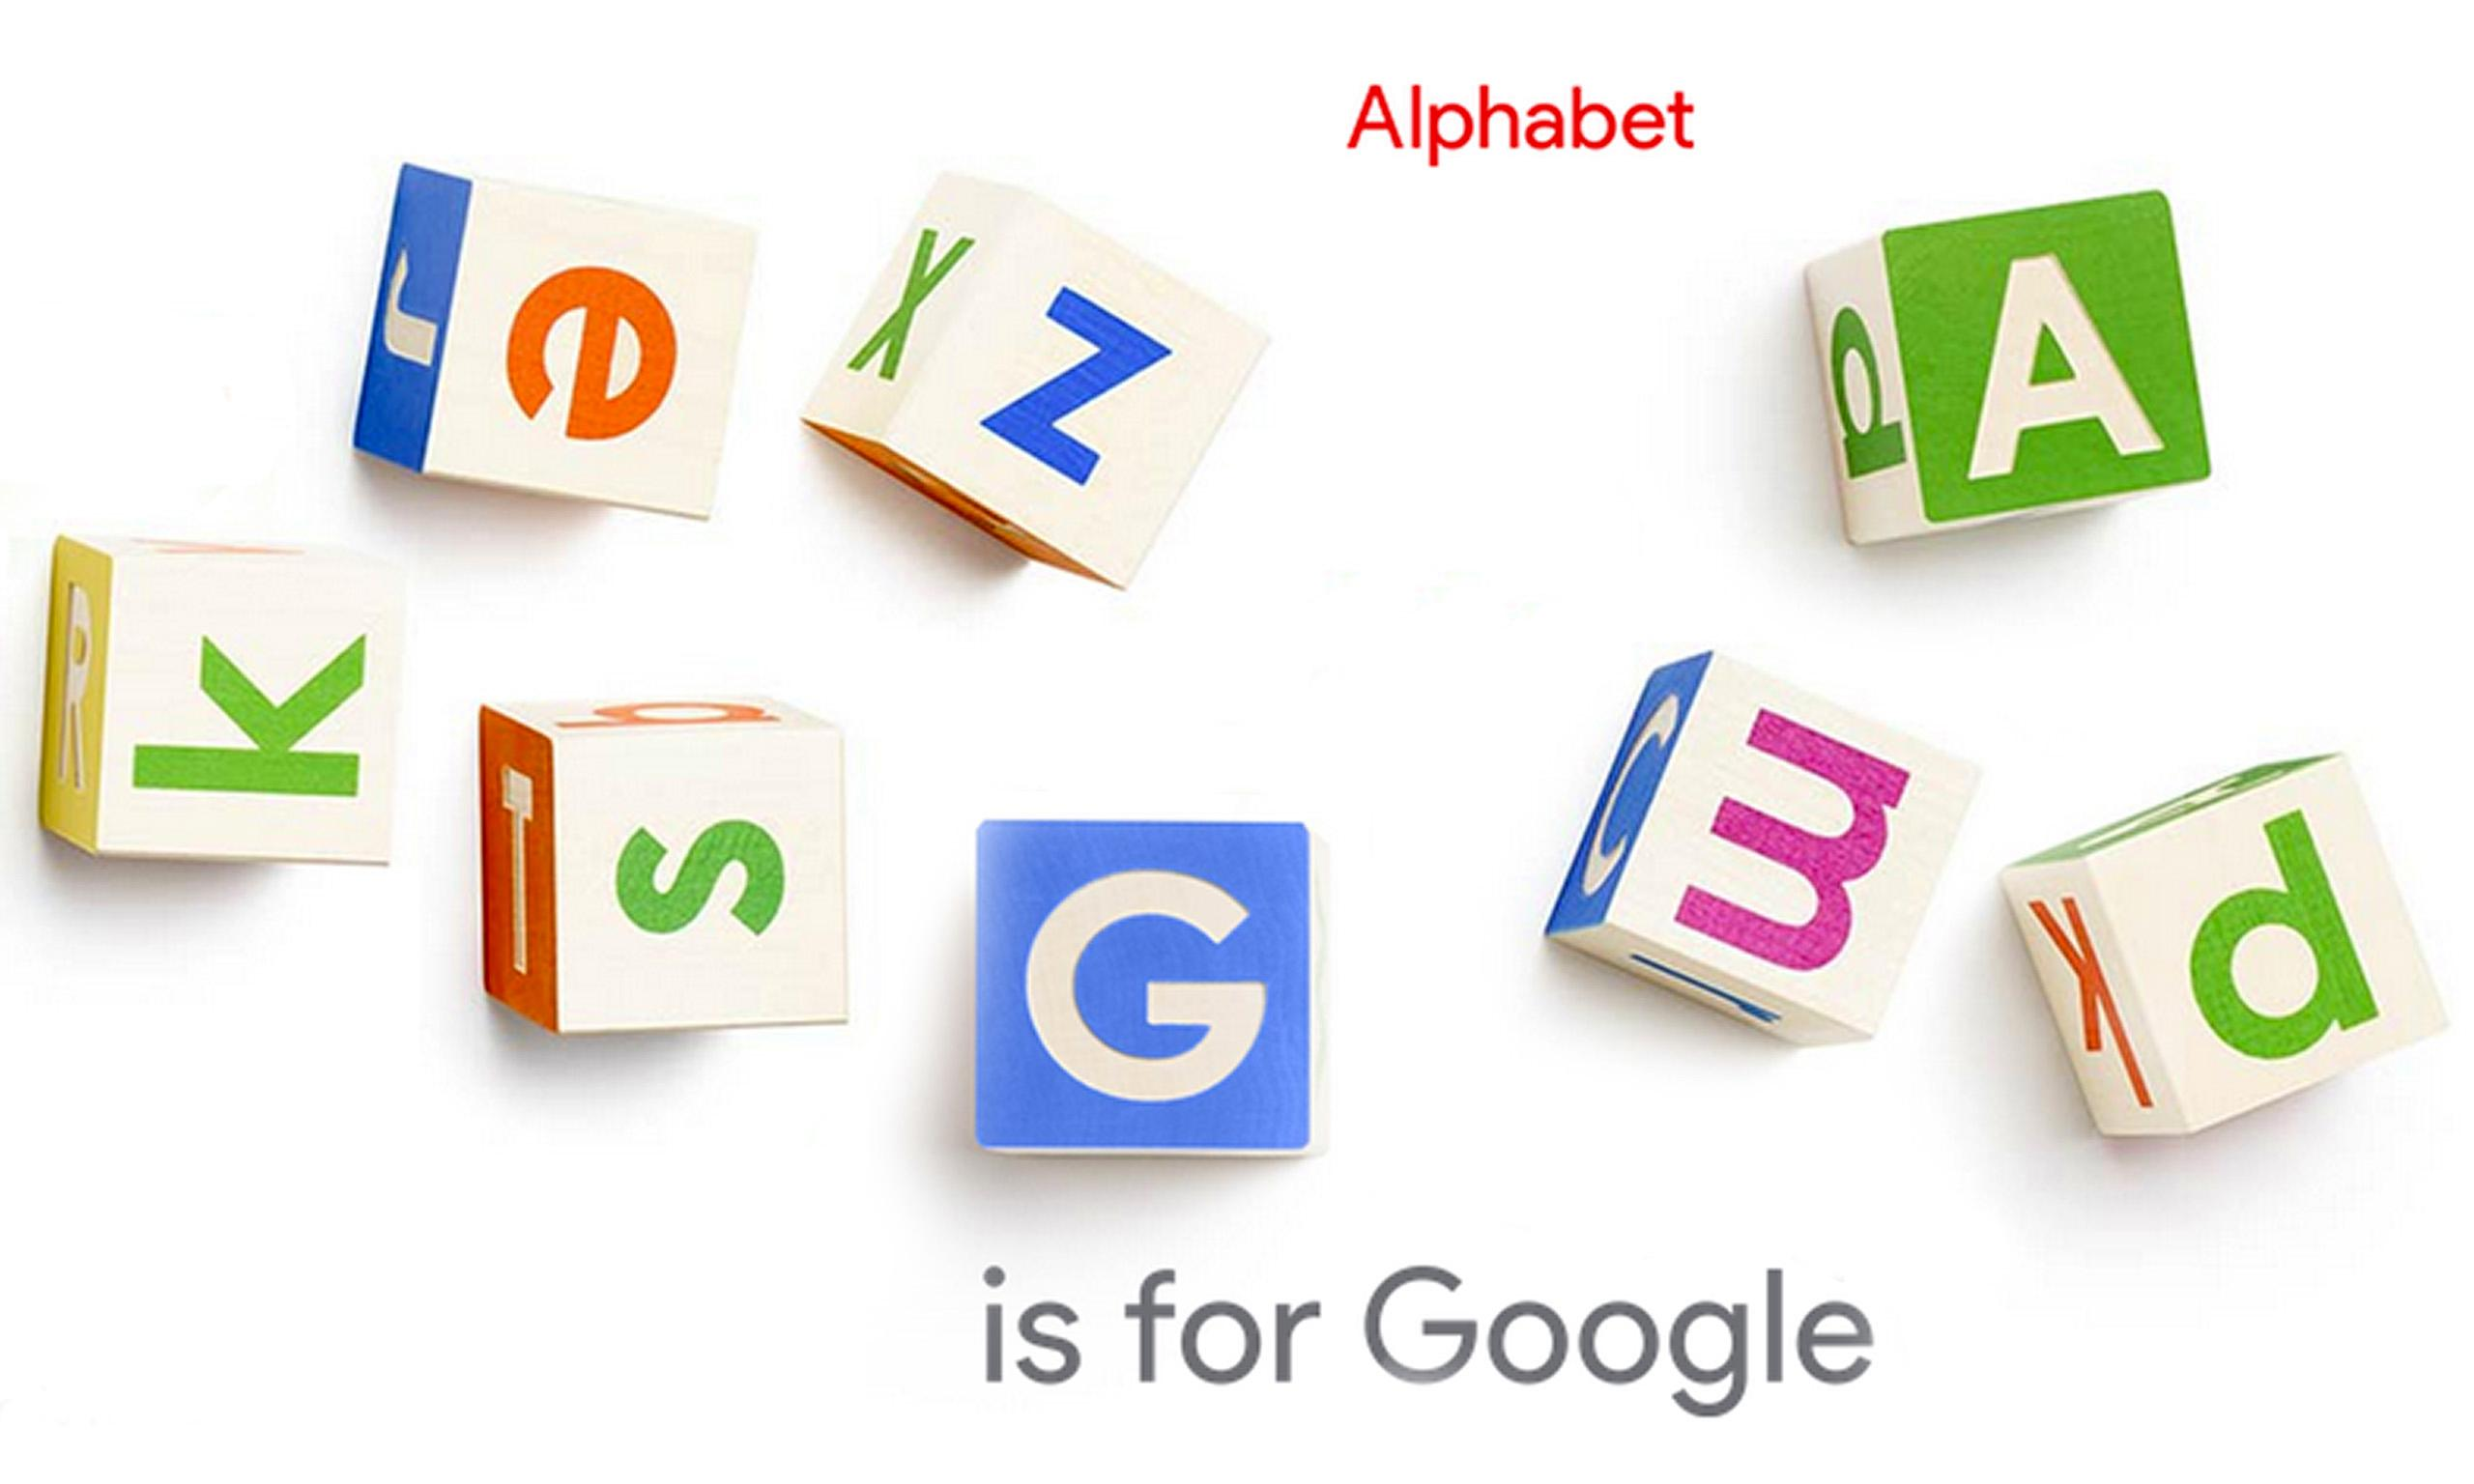 Why Google is restructuring, why the name Alphabet and how it affects you